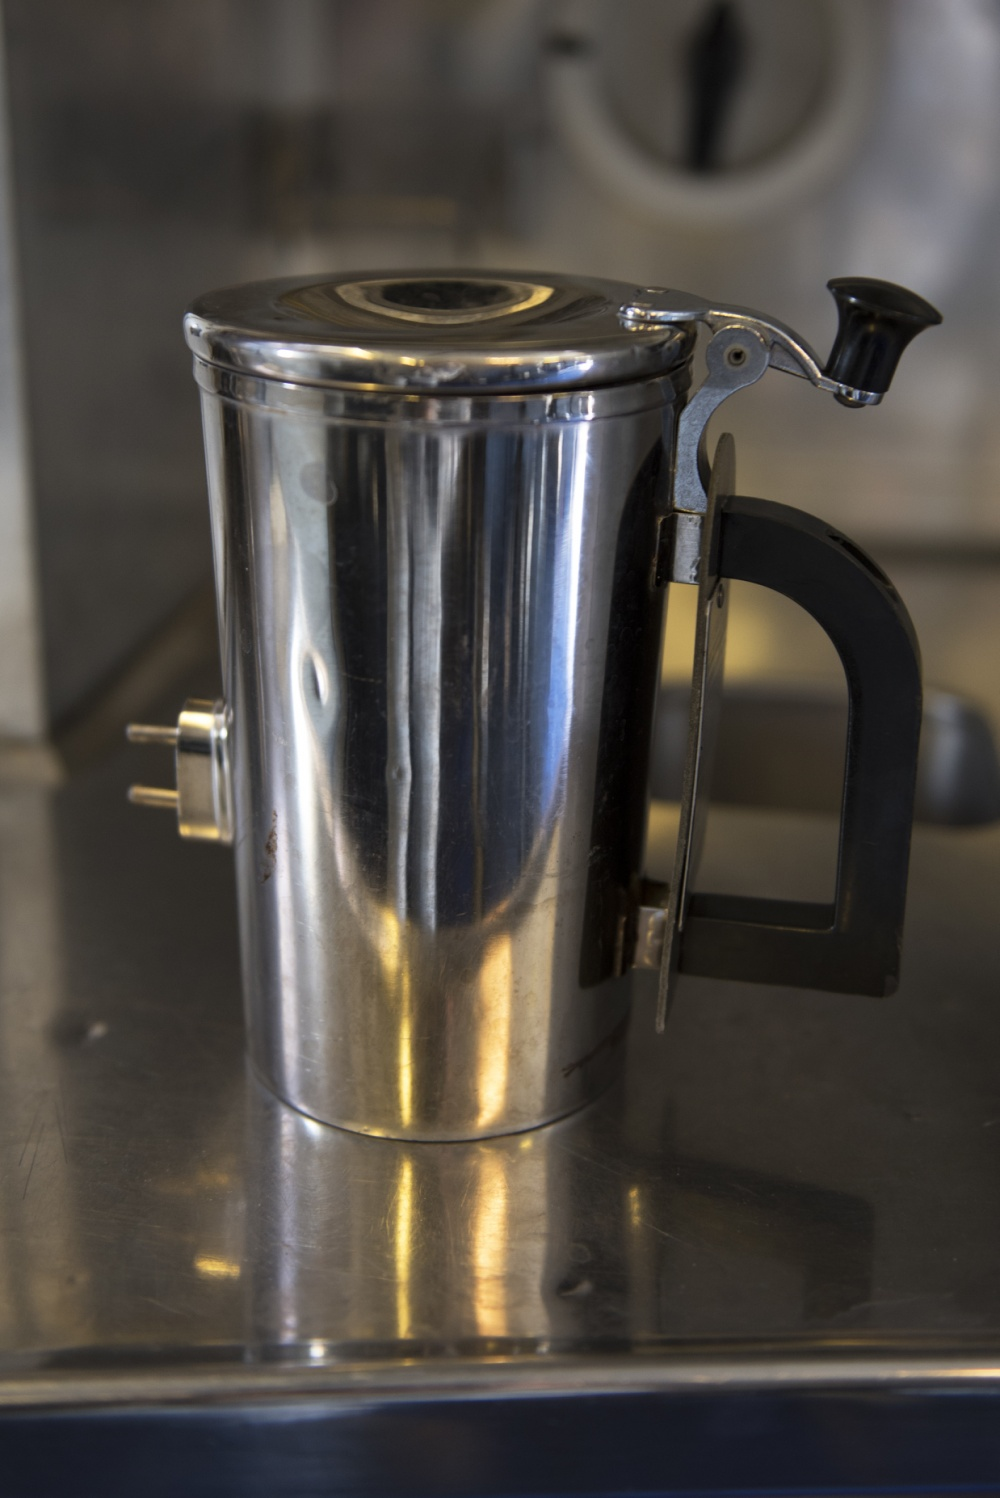 The hot cup with the original plastic handle. Photo via U.S. Air Force/Courtesy of Tech. Sgt. James Hodgman.